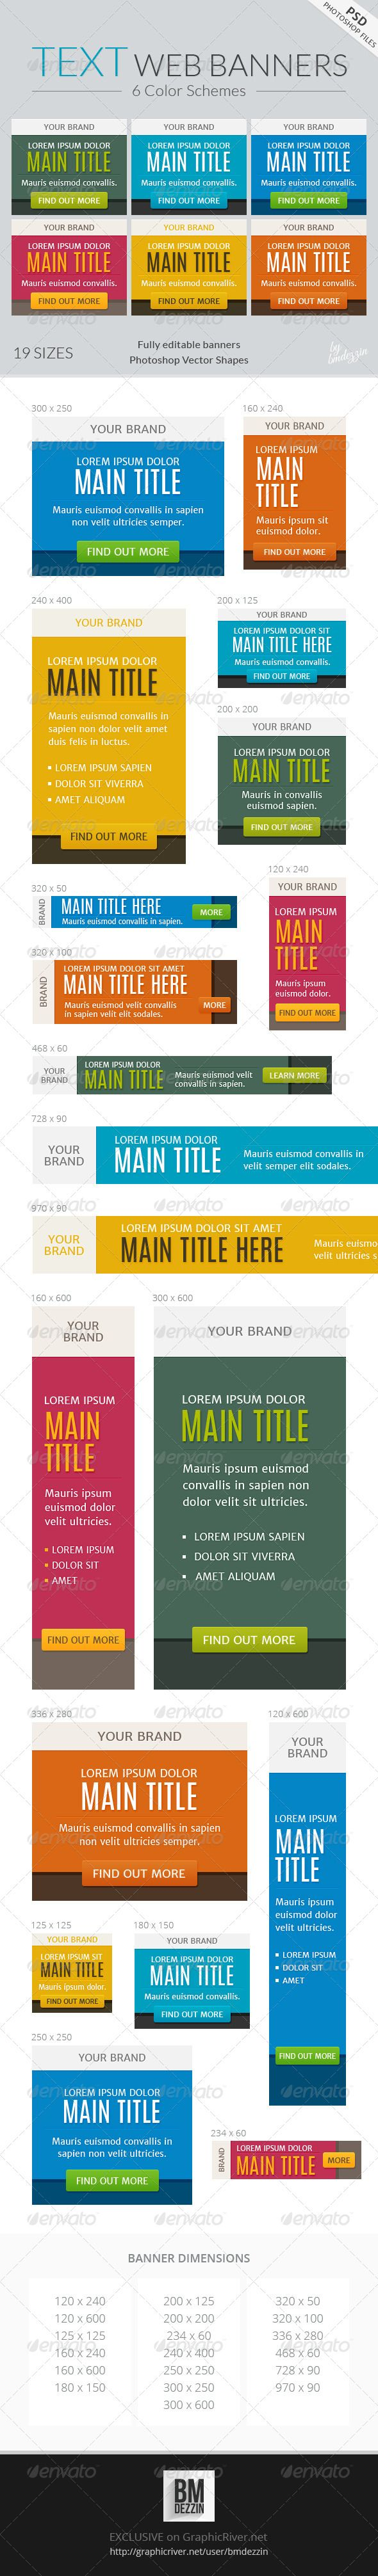 Text Web Banners Template PSD   Buy and Download: http://graphicriver.net/item/text-web-banners/7232028?WT.ac=category_thumb&WT.z_author=bmdezzin&ref=ksioks